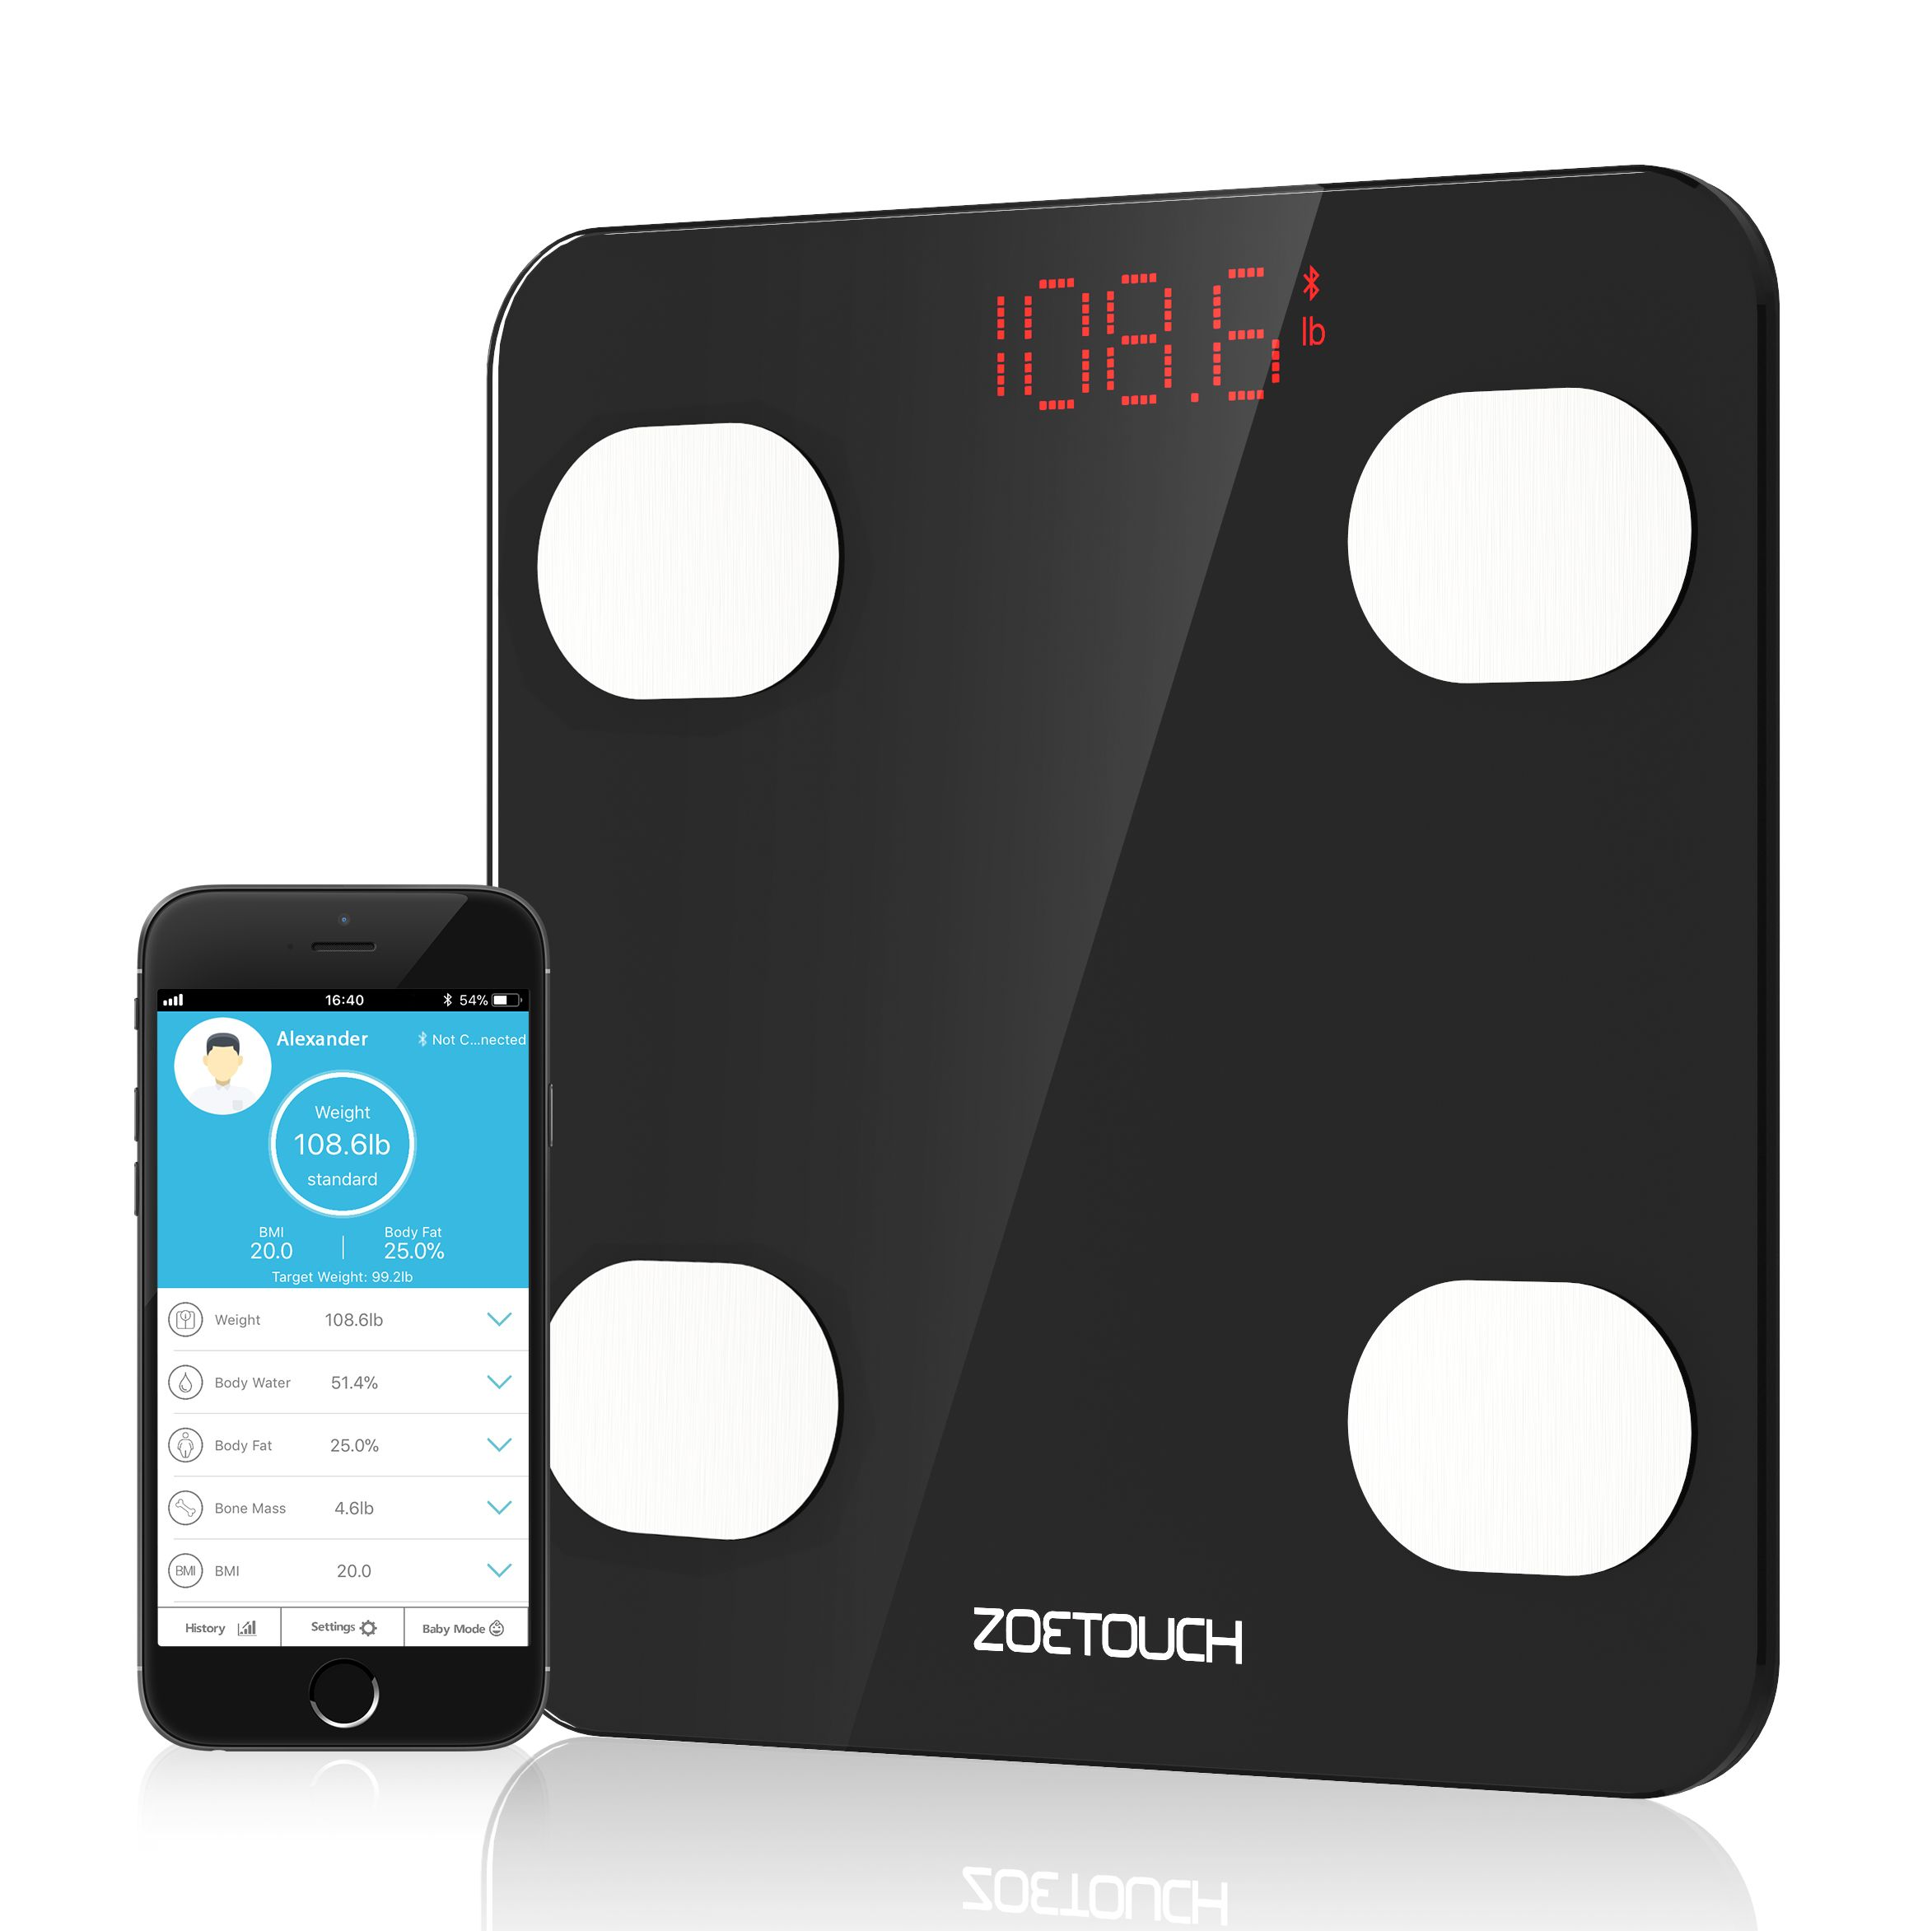 Sync with Fitness App ZOETOUCH App( FREE download in